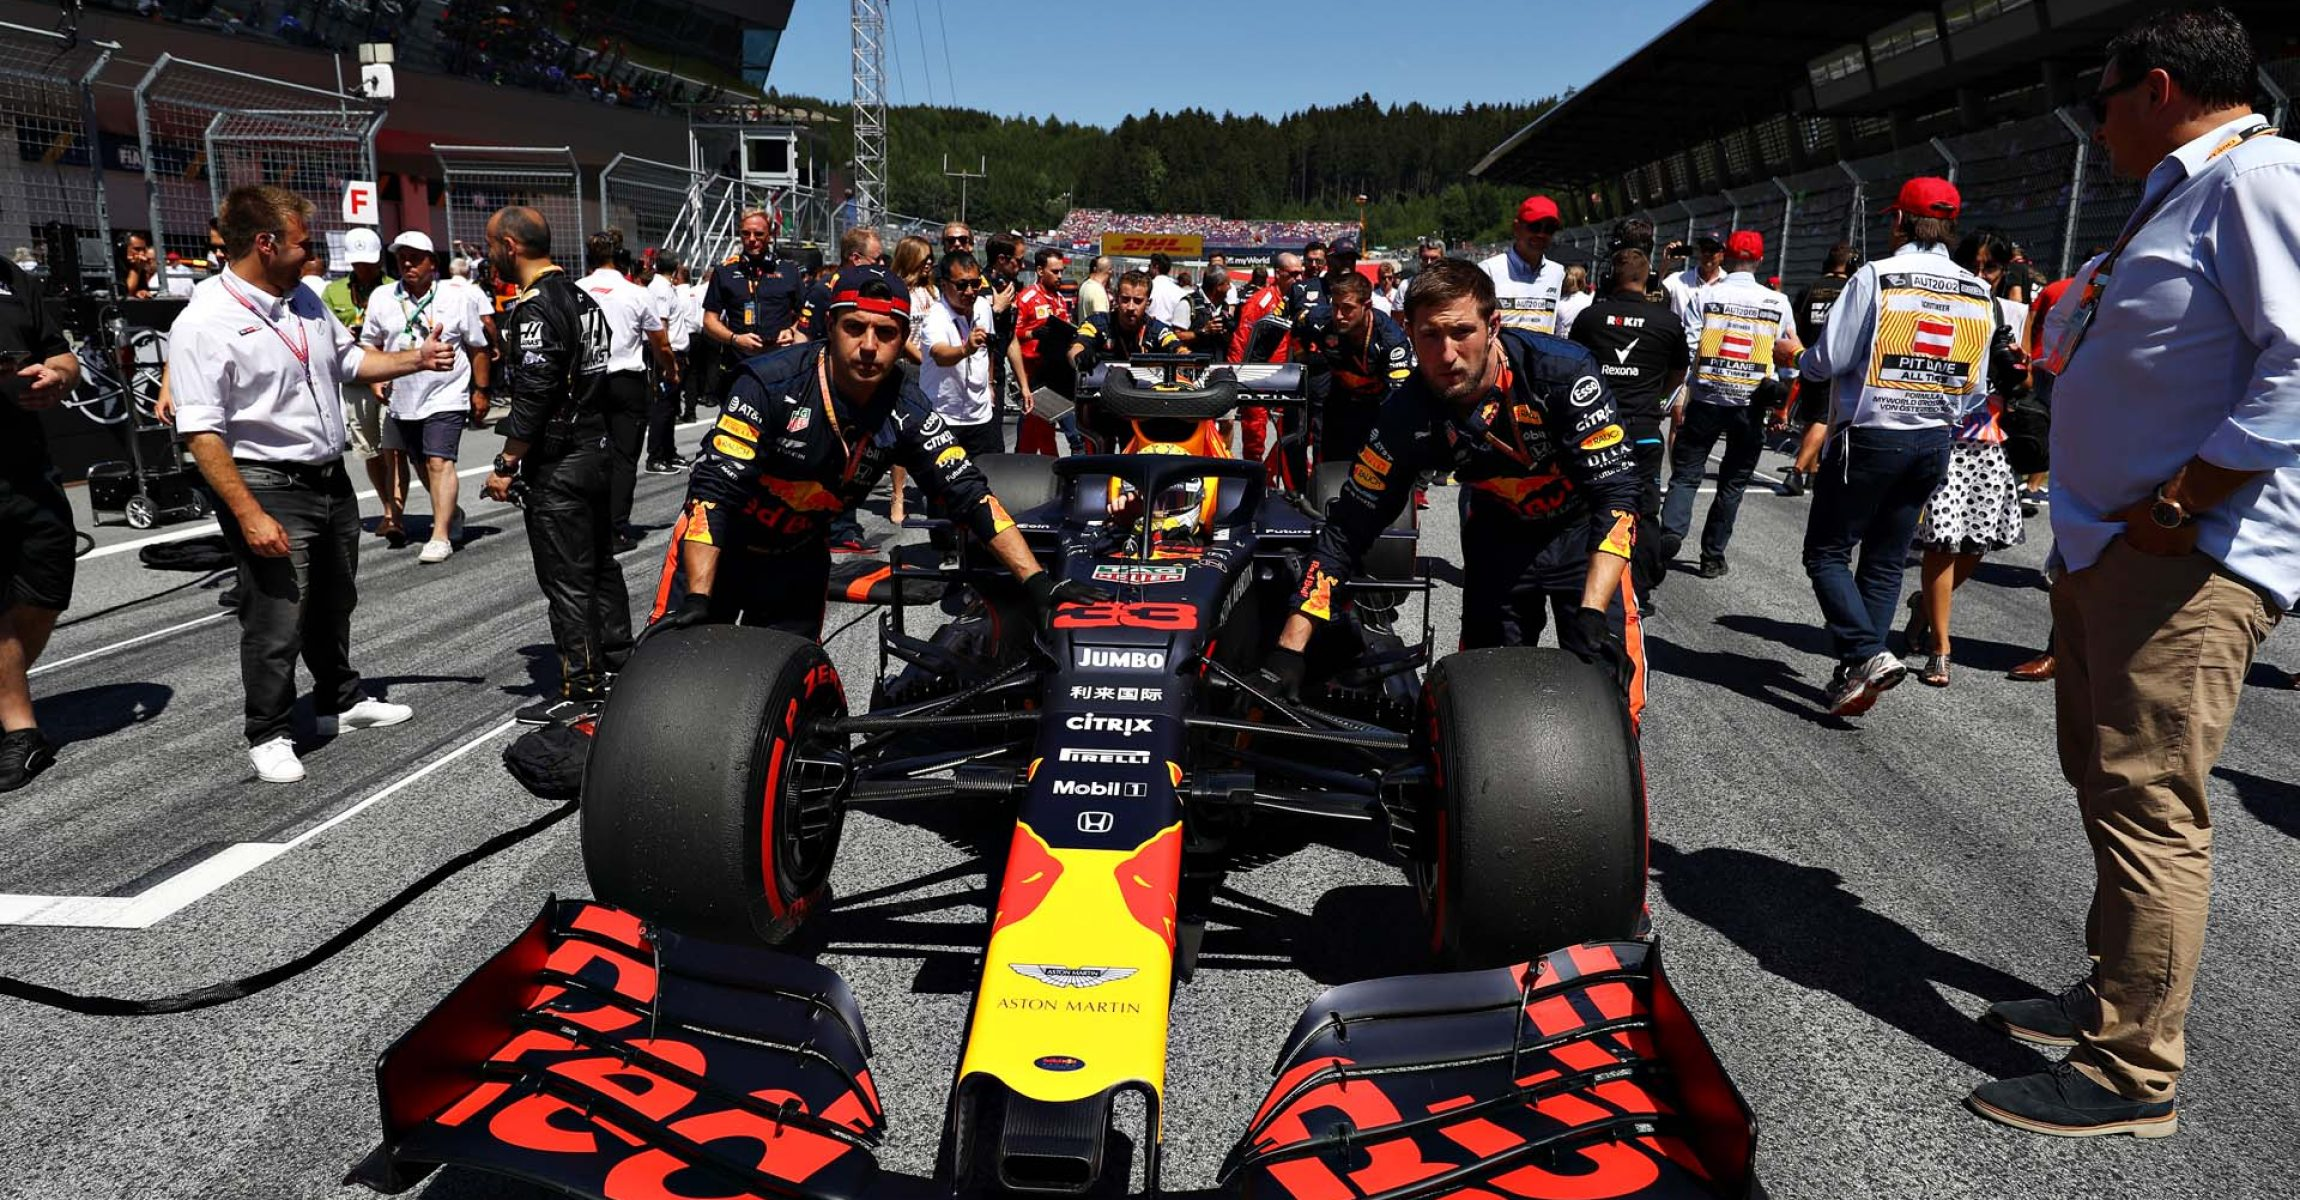 SPIELBERG, AUSTRIA - JUNE 30: Max Verstappen of Netherlands and Red Bull Racing is pushed onto the grid before the F1 Grand Prix of Austria at Red Bull Ring on June 30, 2019 in Spielberg, Austria. (Photo by Mark Thompson/Getty Images) // Getty Images / Red Bull Content Pool // AP-1ZTB3BZ1S1W11 // Usage for editorial use only // Please go to www.redbullcontentpool.com for further information. //